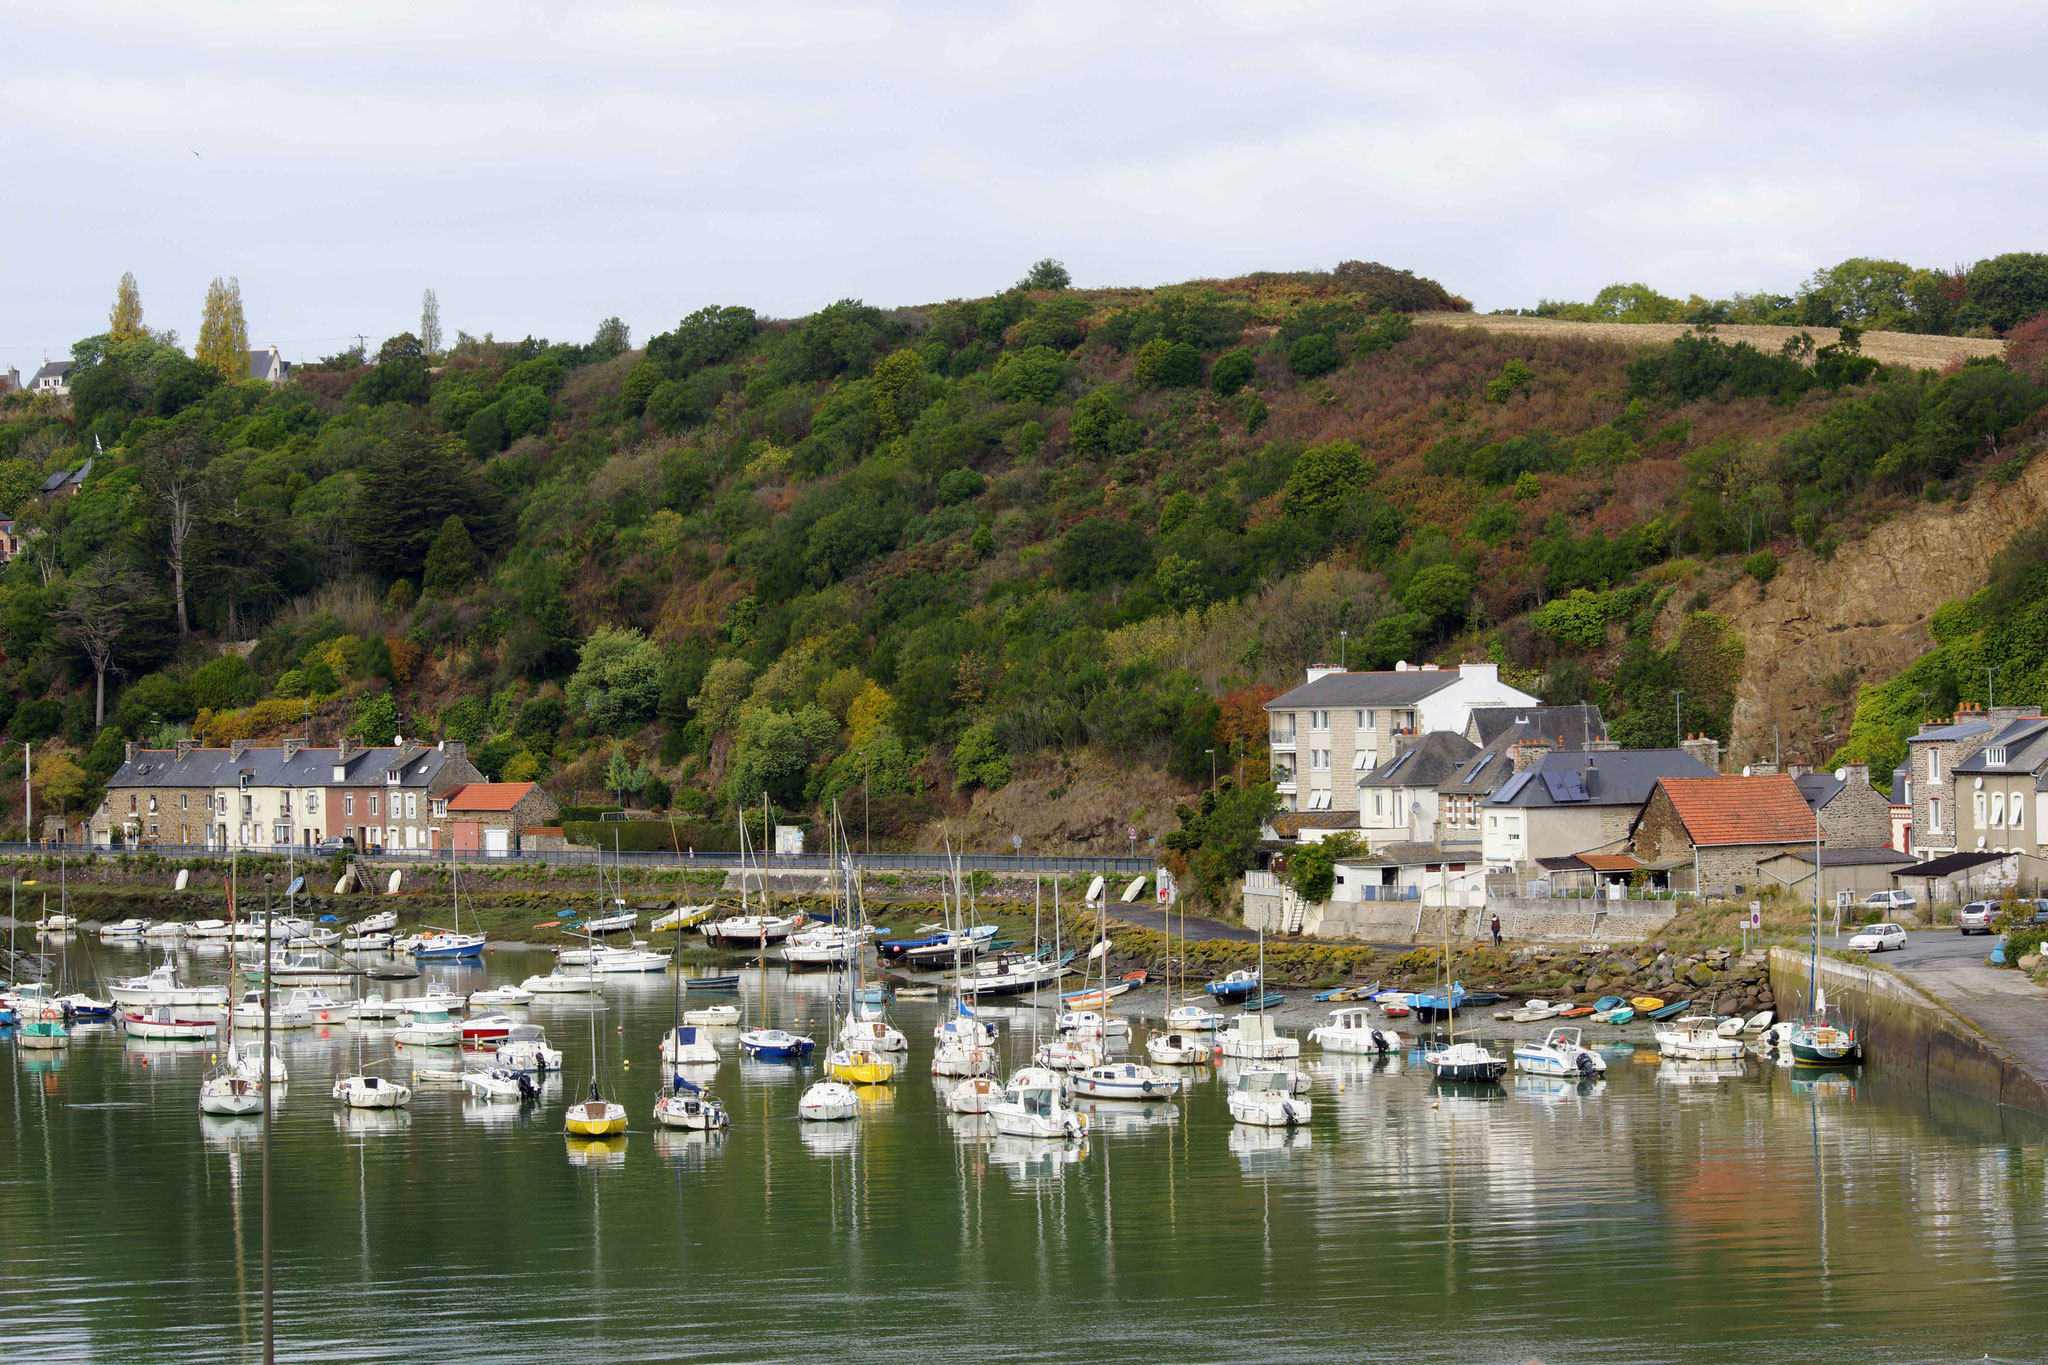 Le port de plaisance de Saint Laurent du Légué